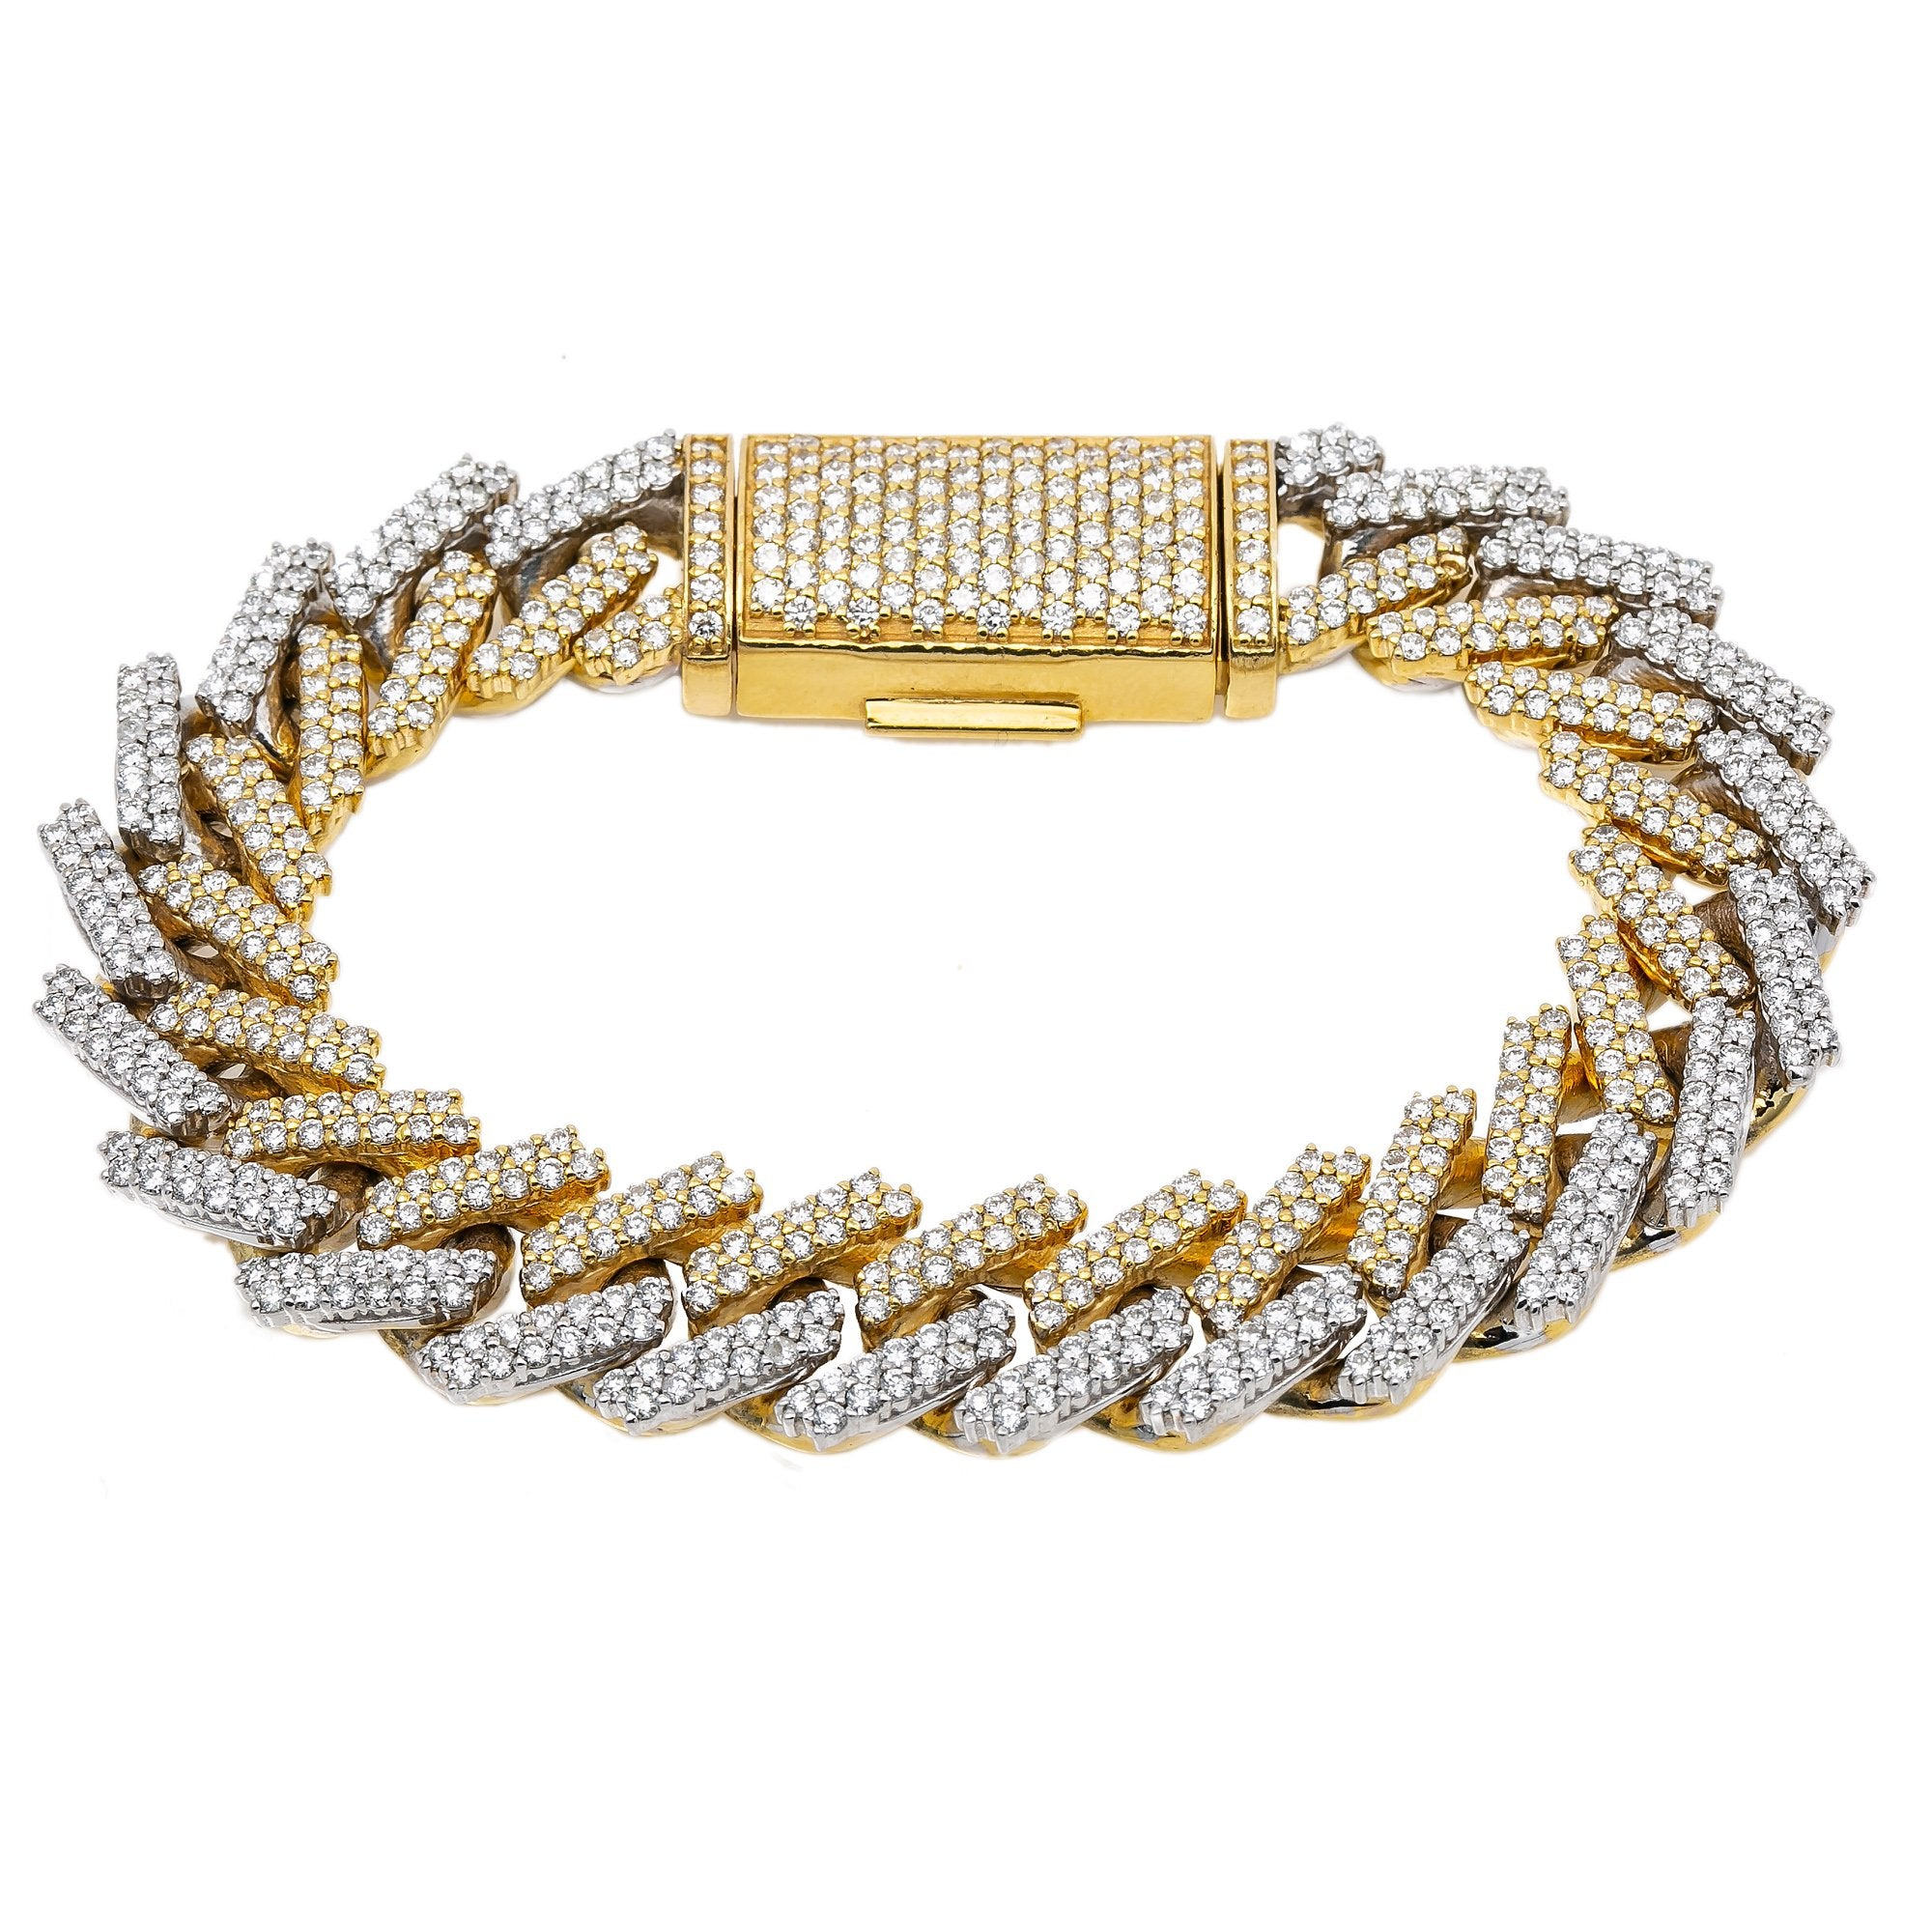 14K Two Tone Prong Set Cuban Link Bracelet With 11.50 CT Diamonds